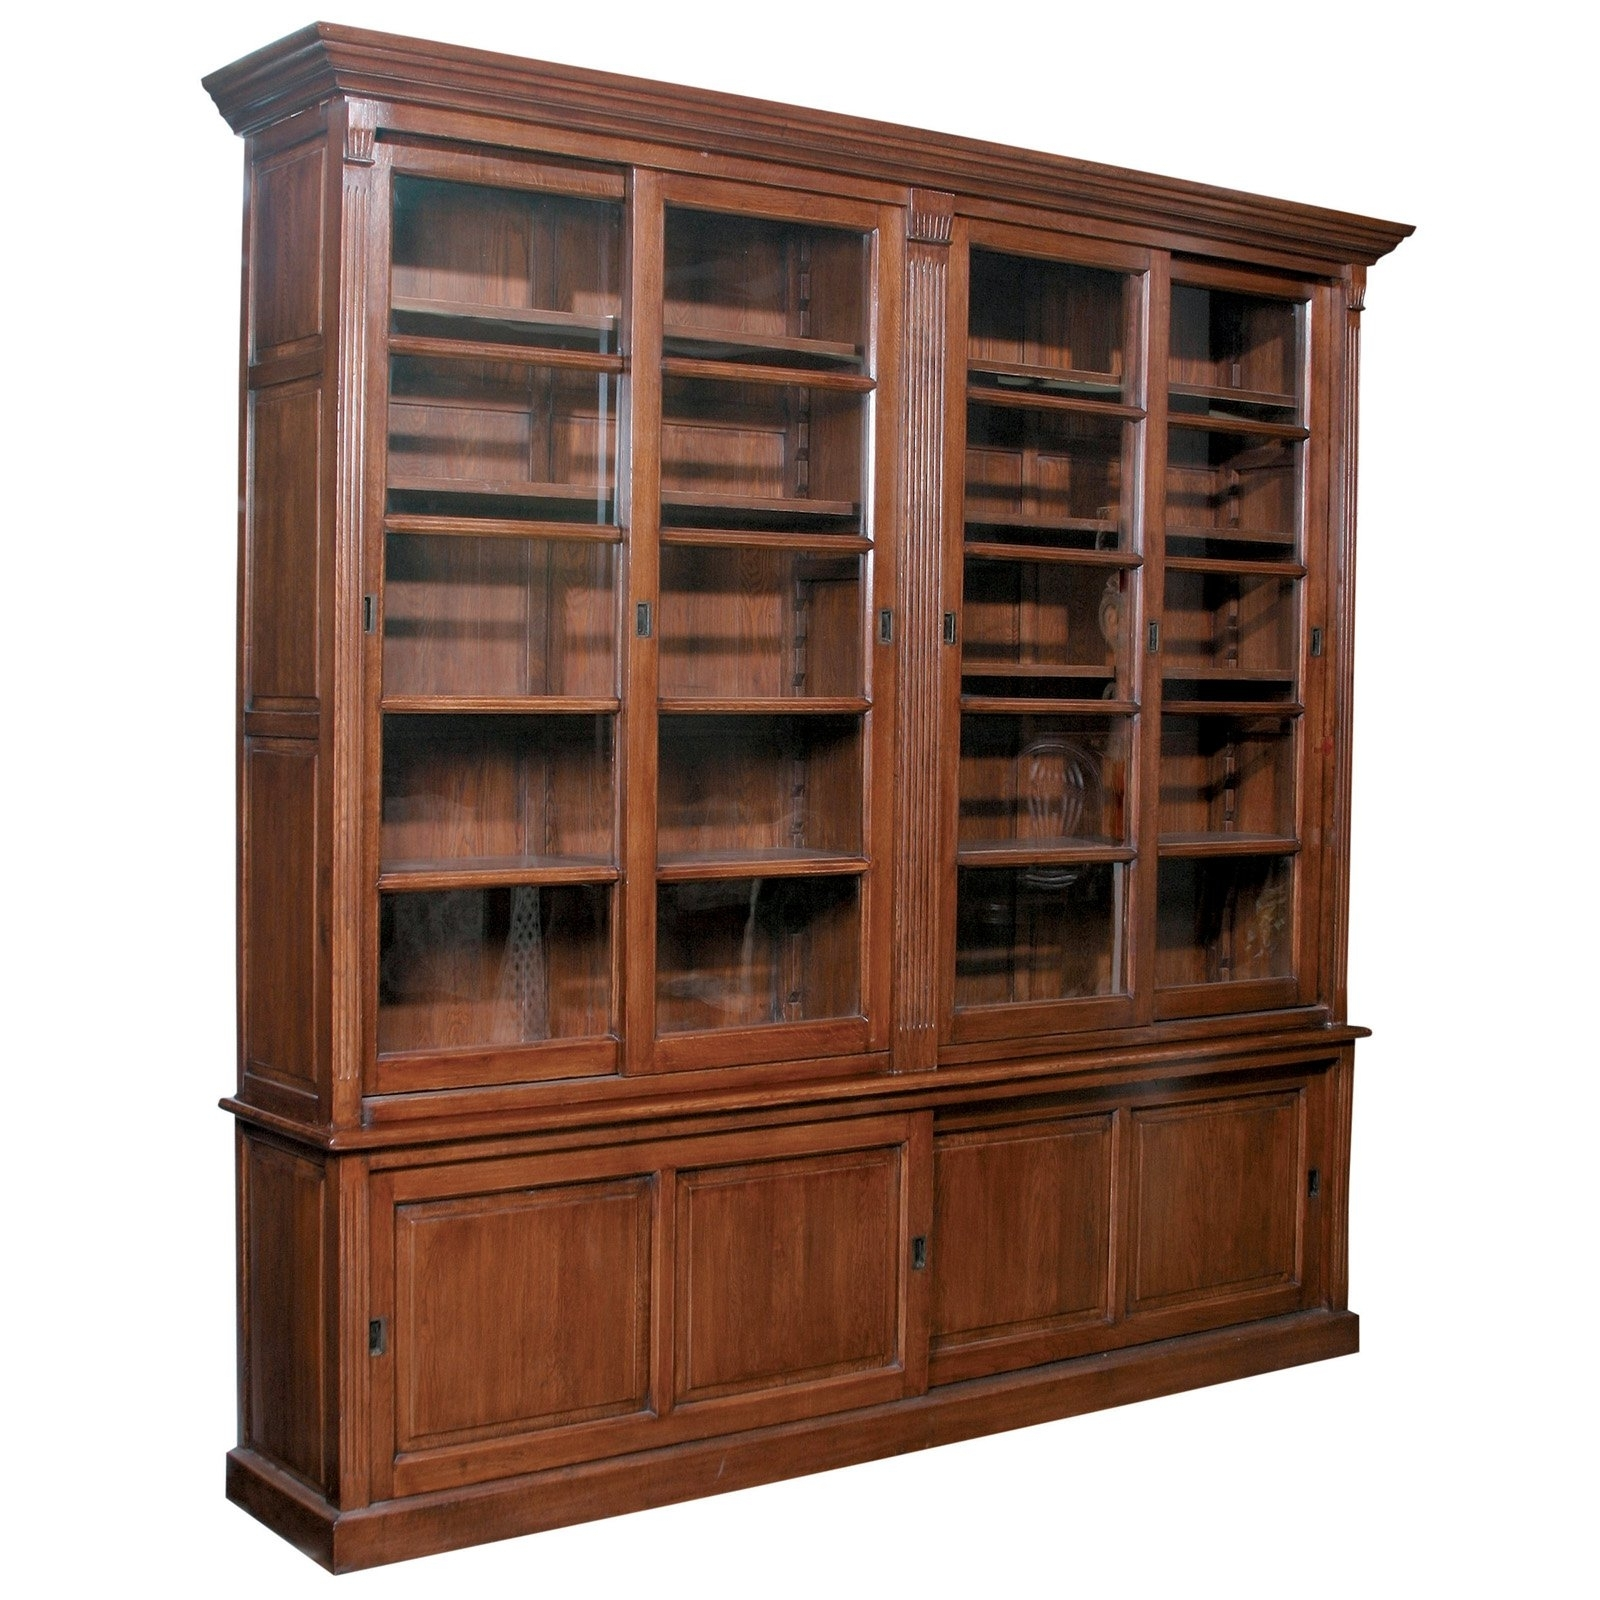 Most Popular Rustic Bookcases With Doors : Doherty House – Build Bookcases With Regarding Rustic Bookcases (View 9 of 15)